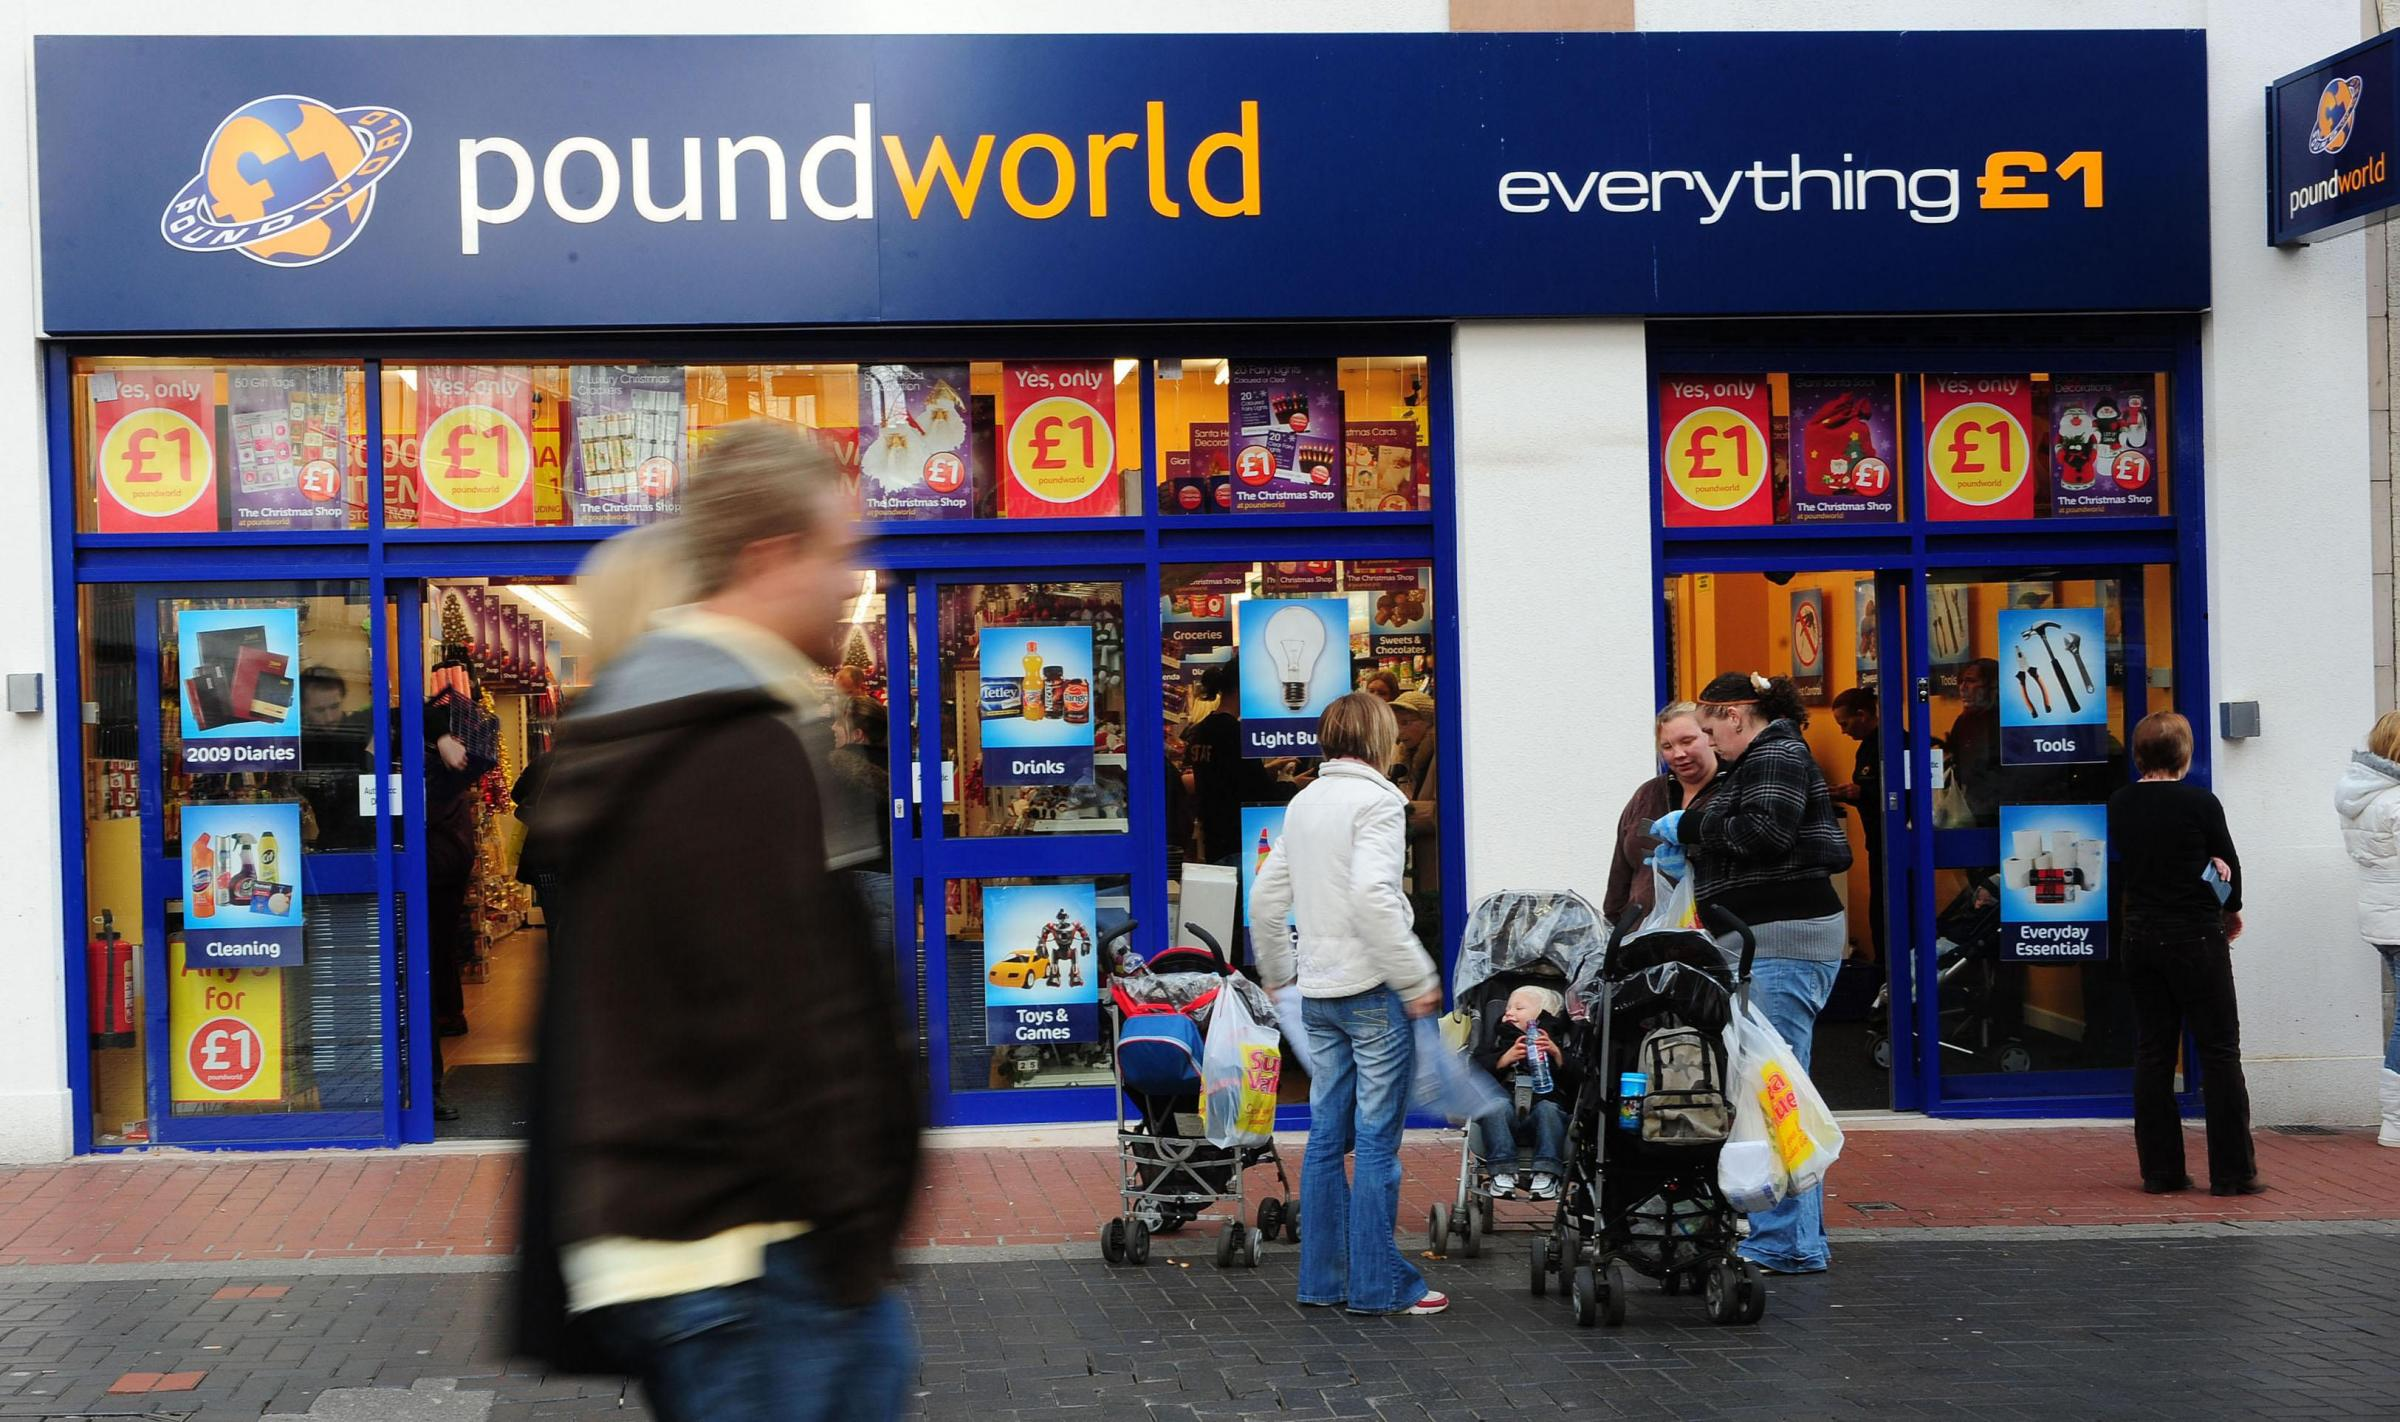 File photo 24/11/2008 of a Poundworld store in Leeds city centre. Discount chain Poundworld is pursuing a restructuring plan that could see it shut around a third of its stores, putting more than 1,500 jobs in doubt. PRESS ASSOCIATION Photo. Issue date: T